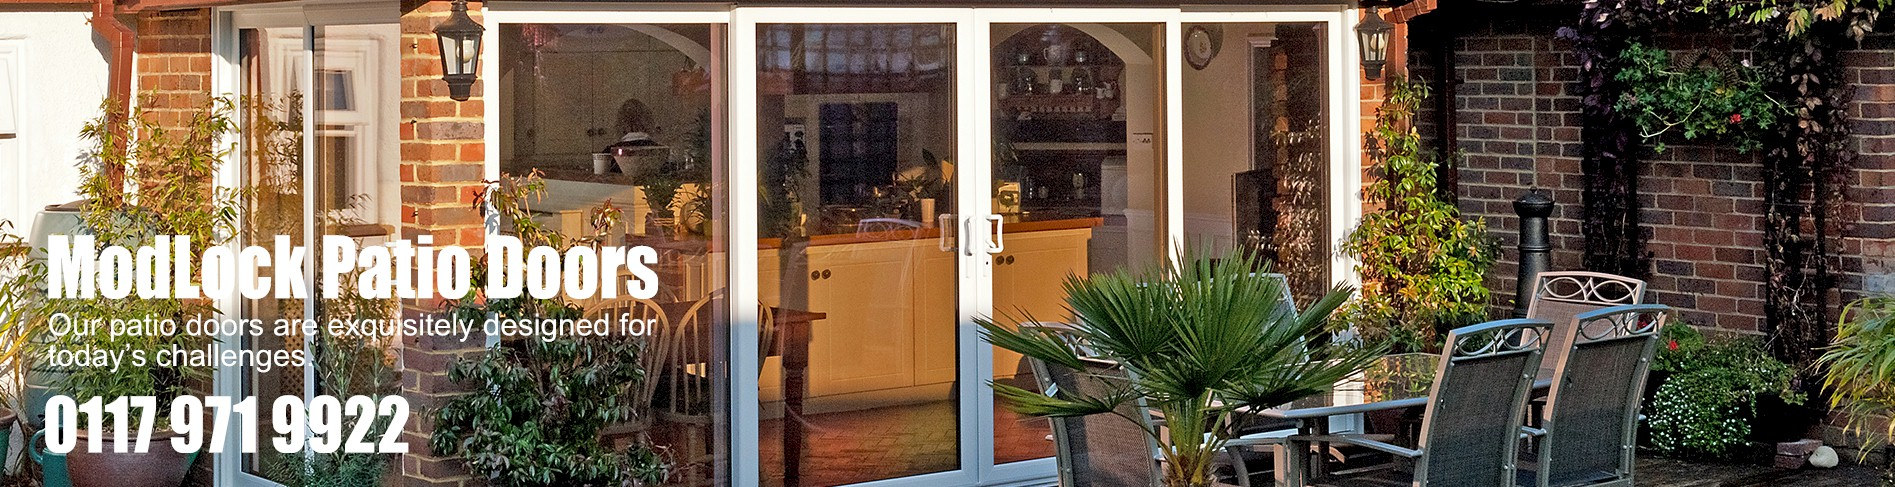 Breathtaking patio sliding doors bristol images exterior for Upvc french doors bristol